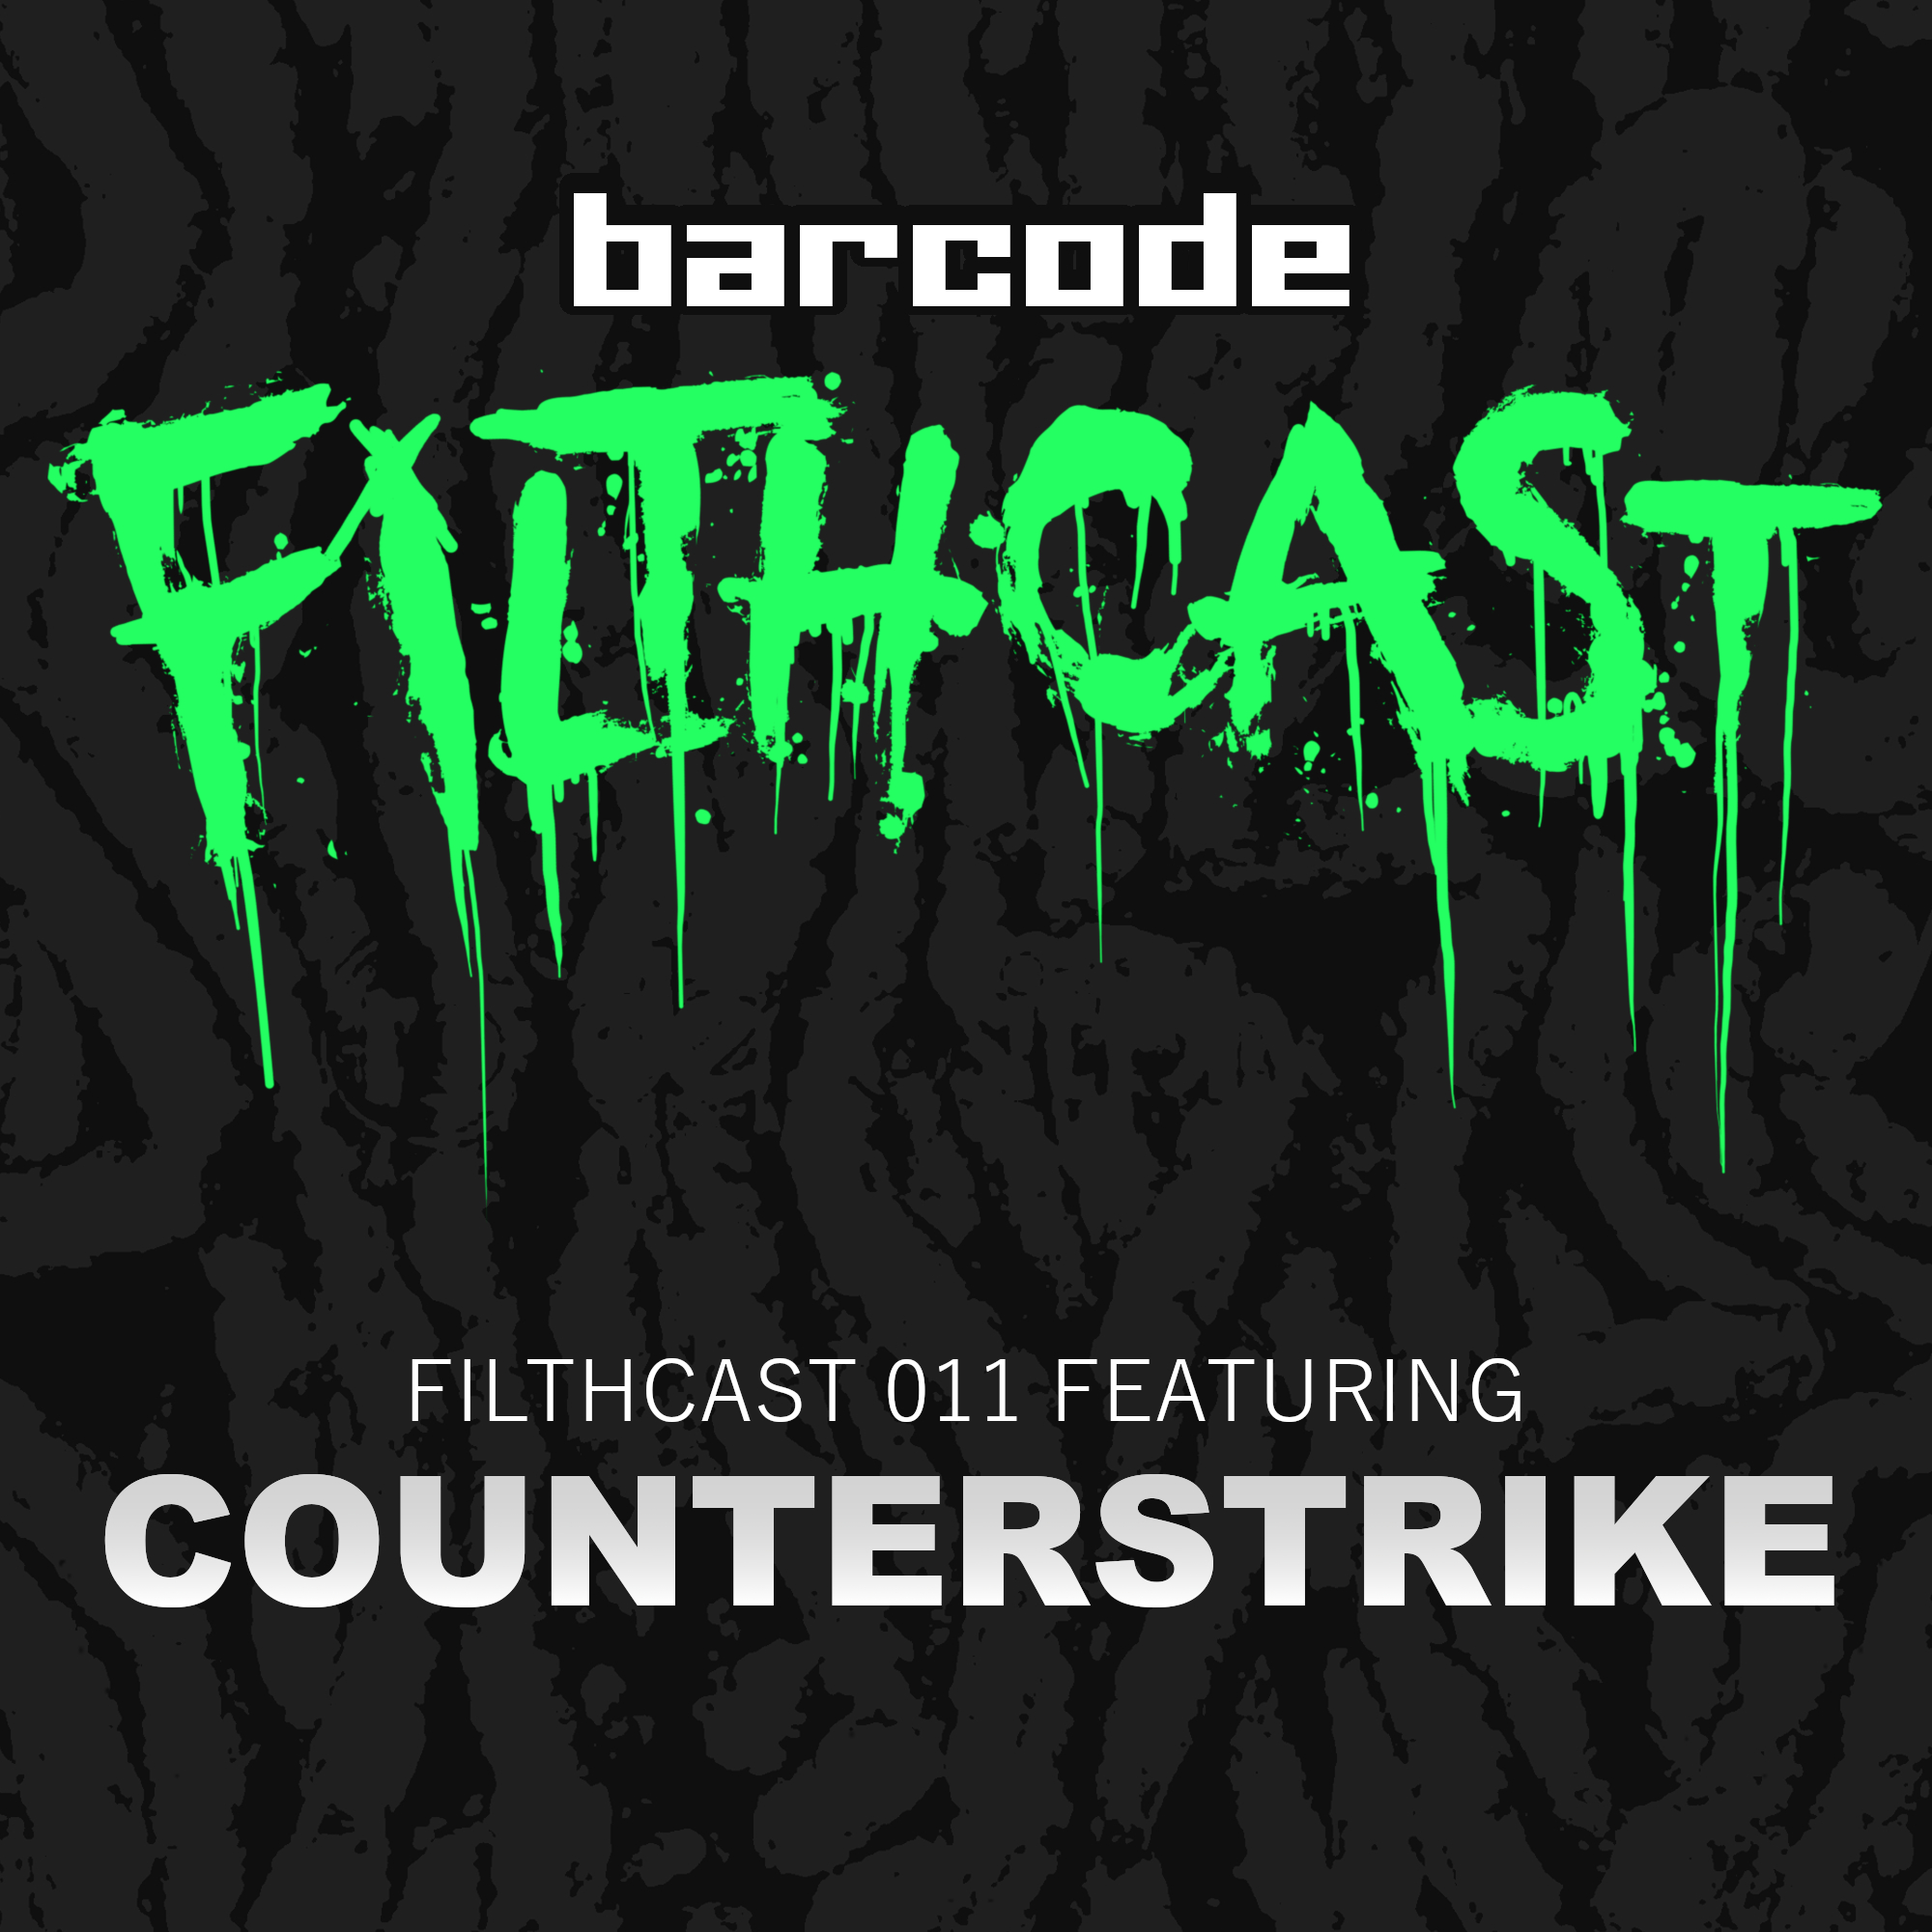 Known and respected for their uncompromised sound and style, Counterstrike kick your face off.